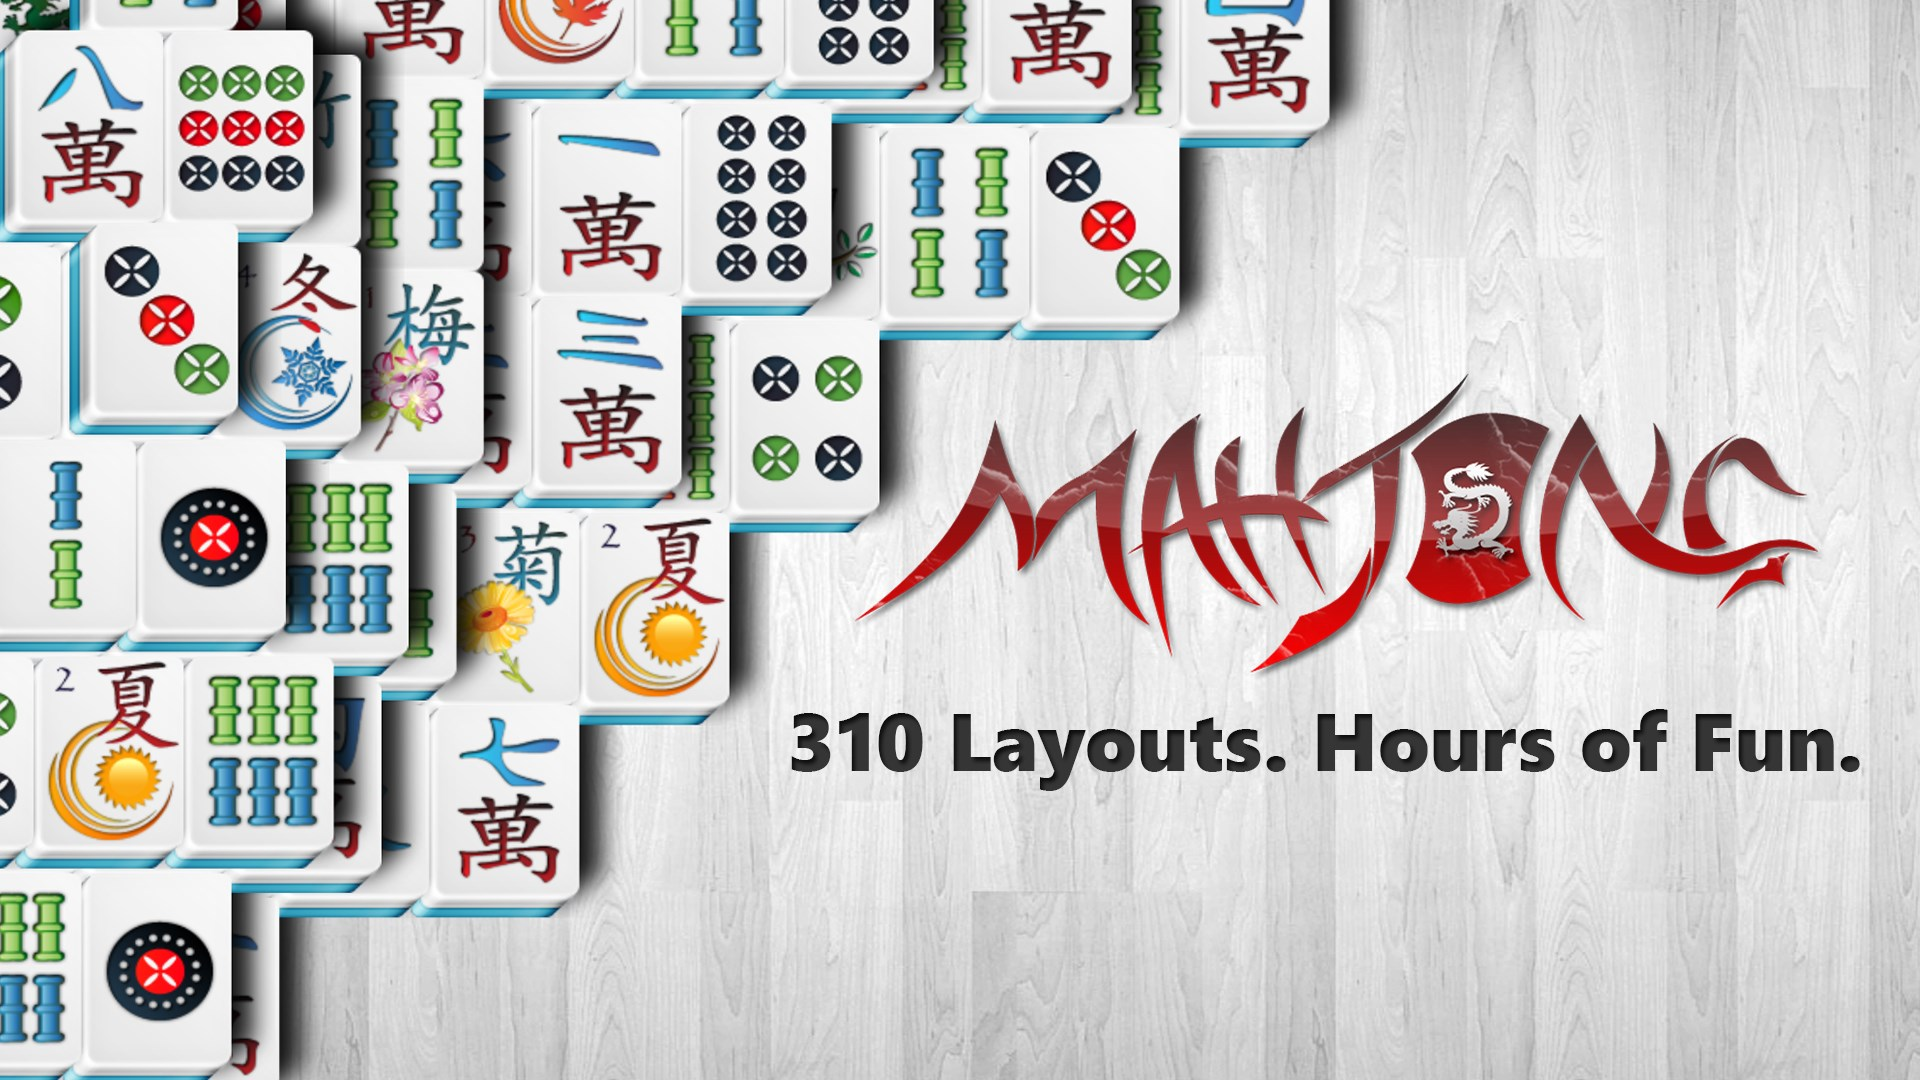 Get Mahjong Solitaire - Microsoft Store